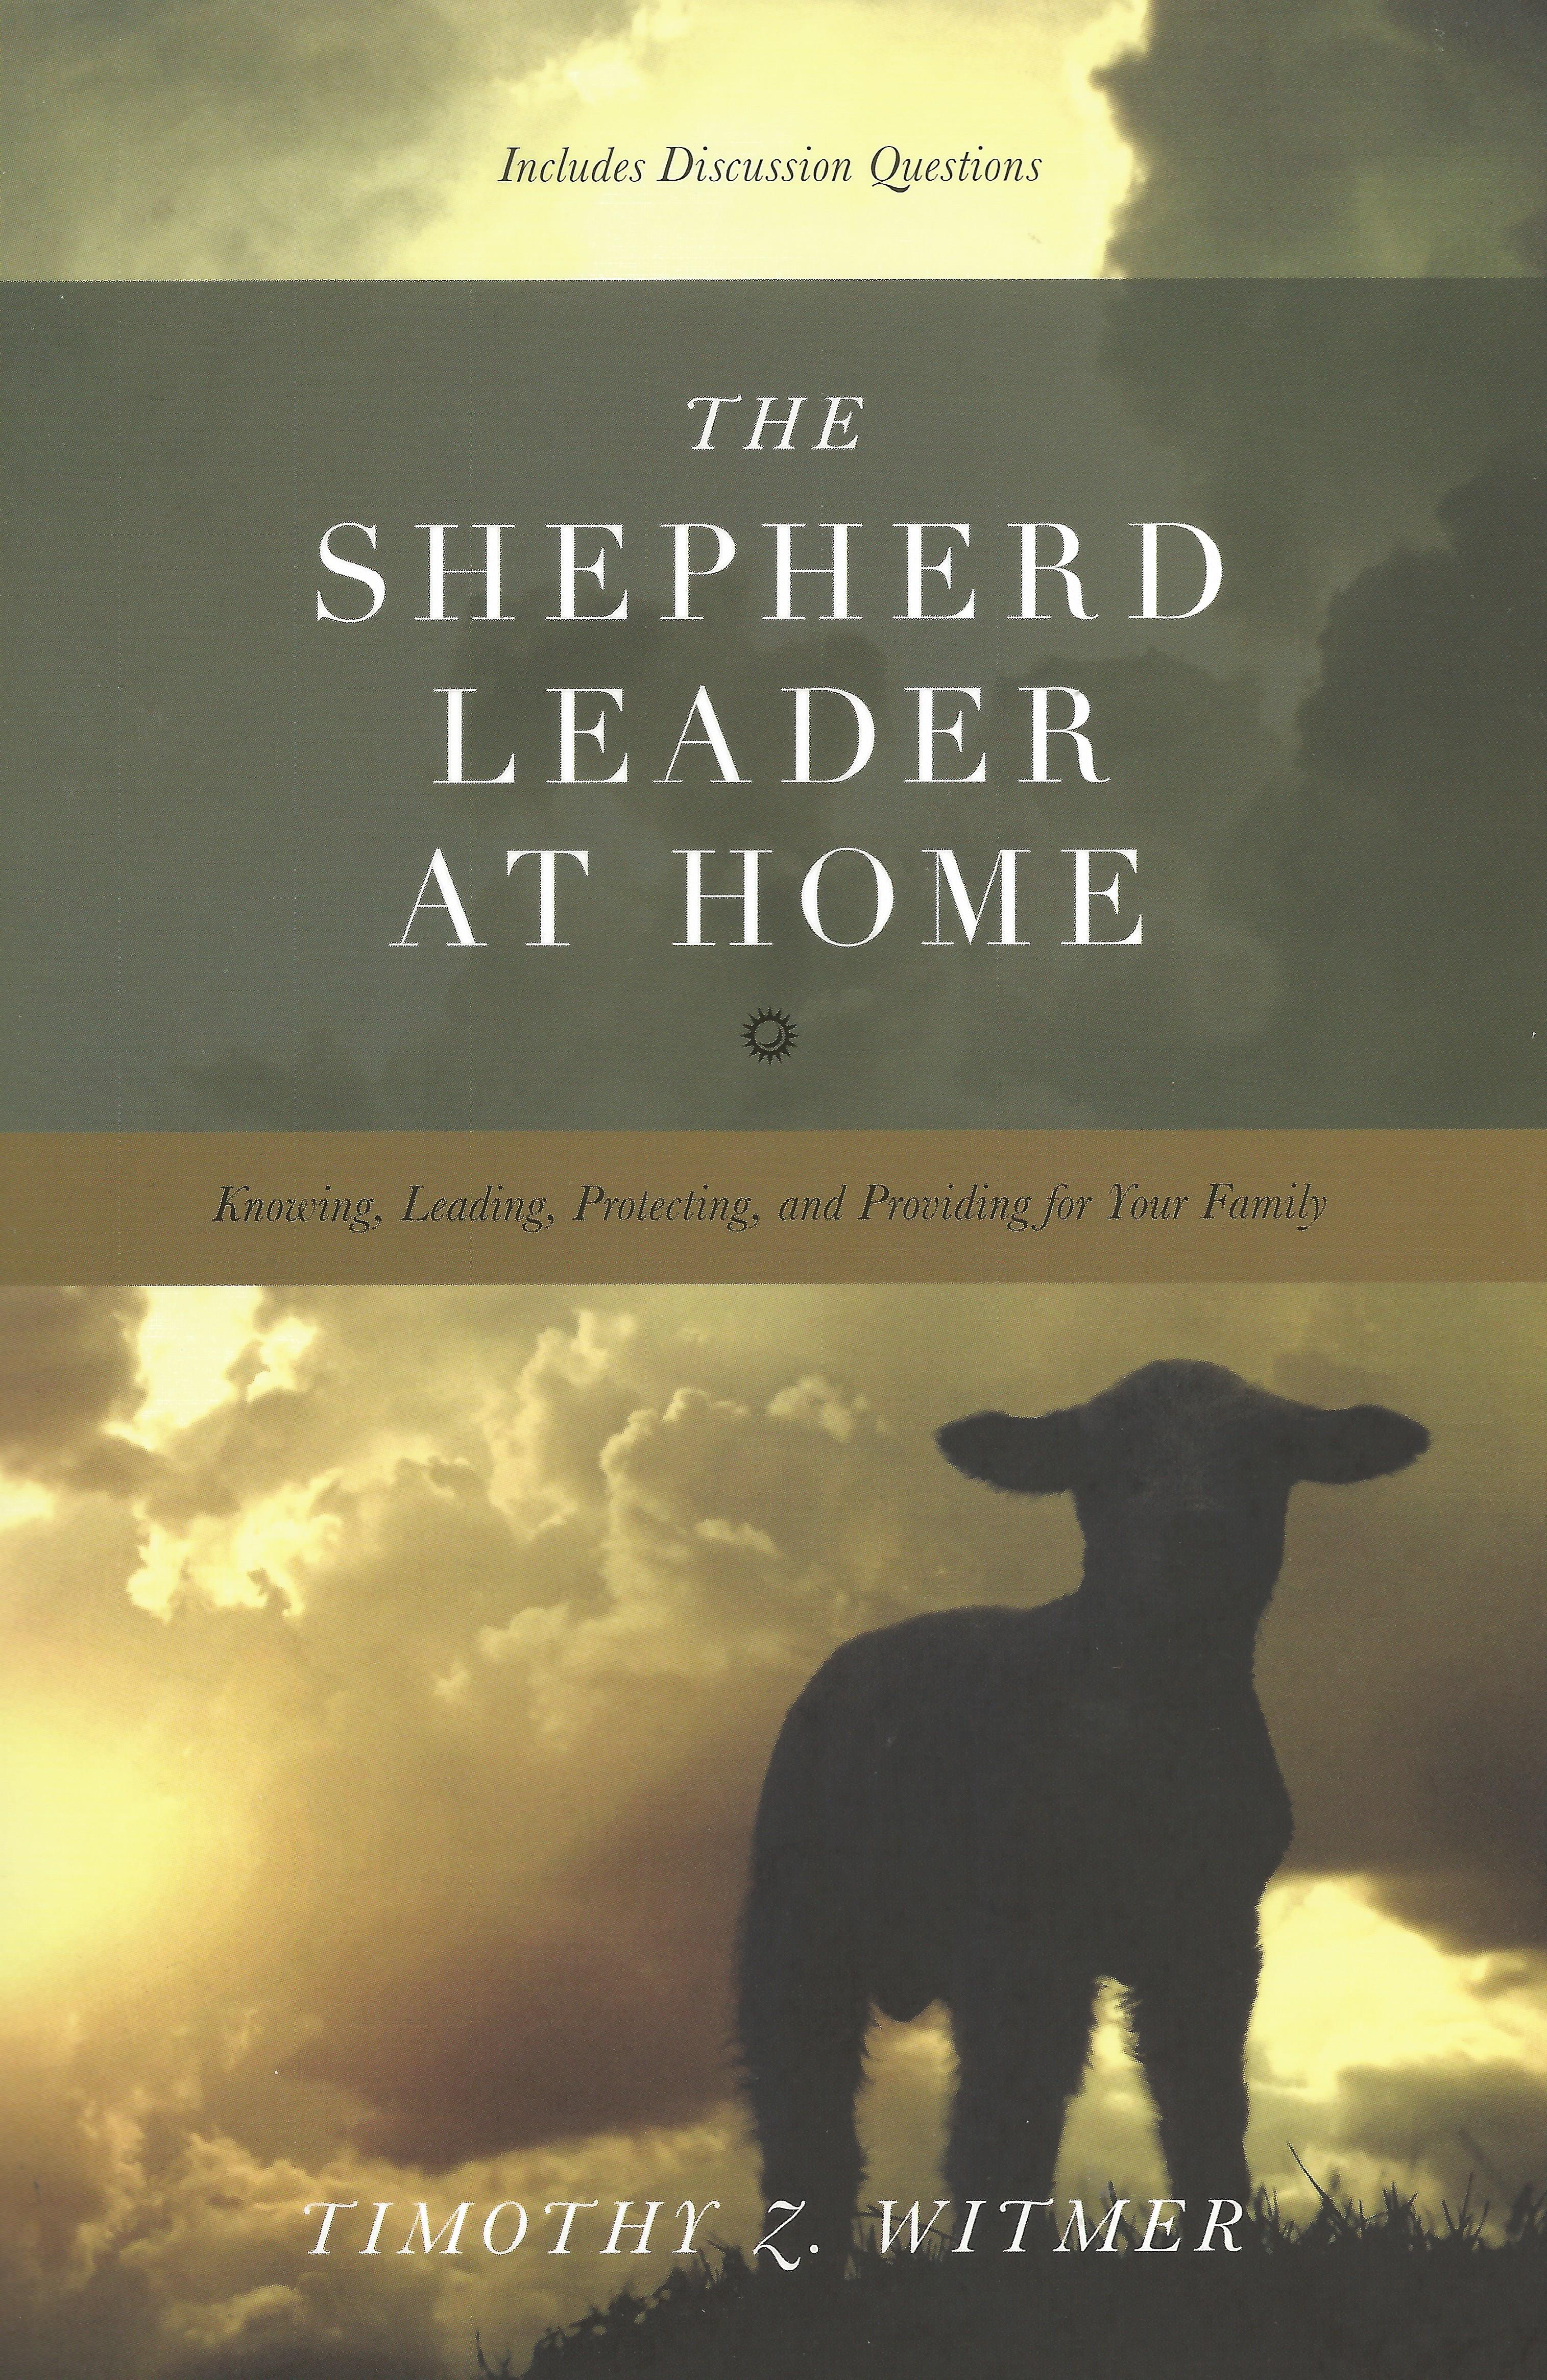 THE SHEPHERD LEADER AT HOME TIMOTHY WITMER